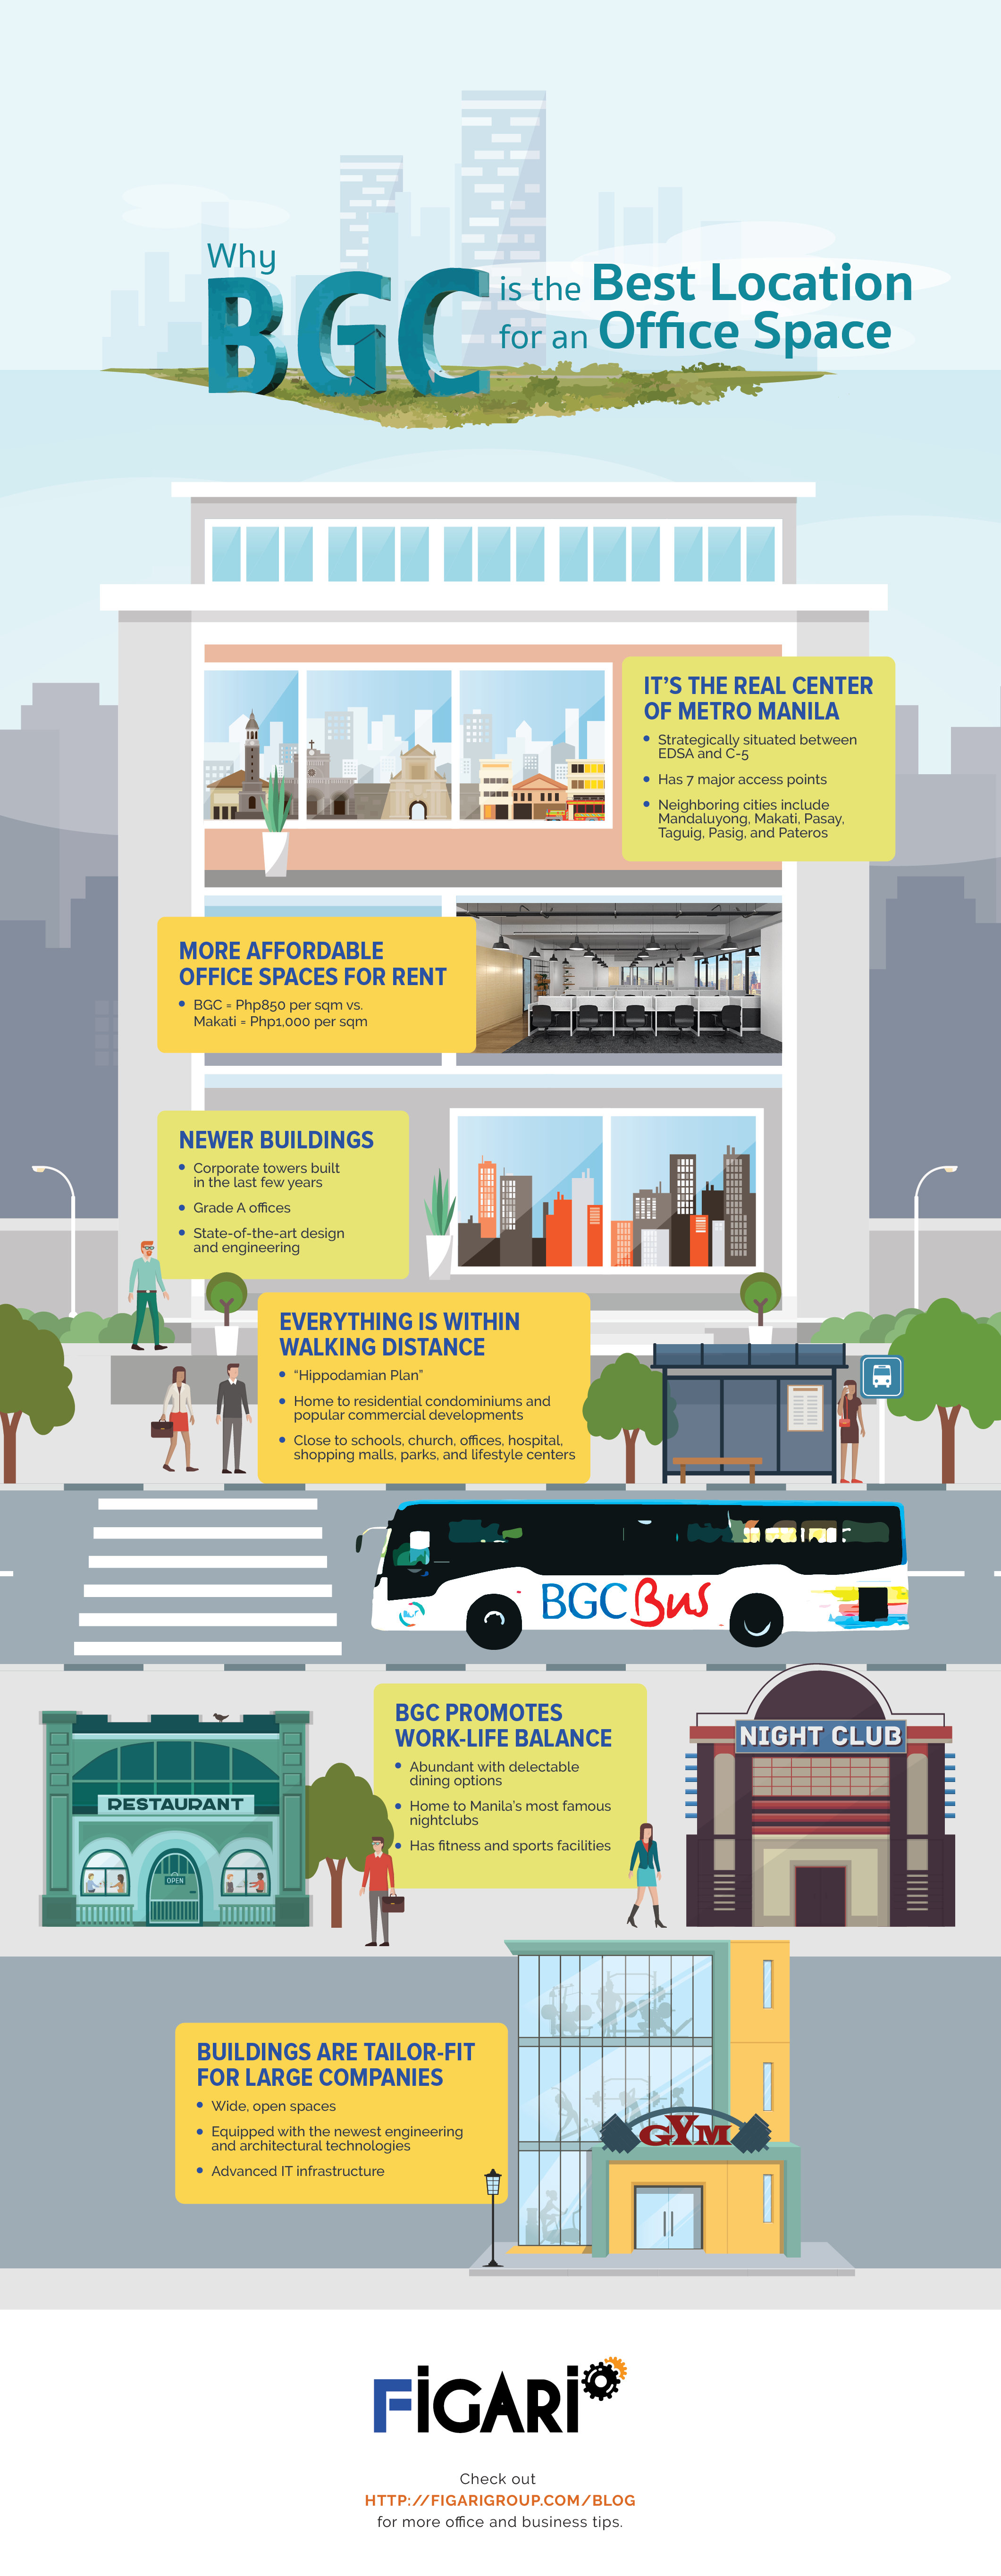 Why BGC is the Best Location for an Office Space - Infographic